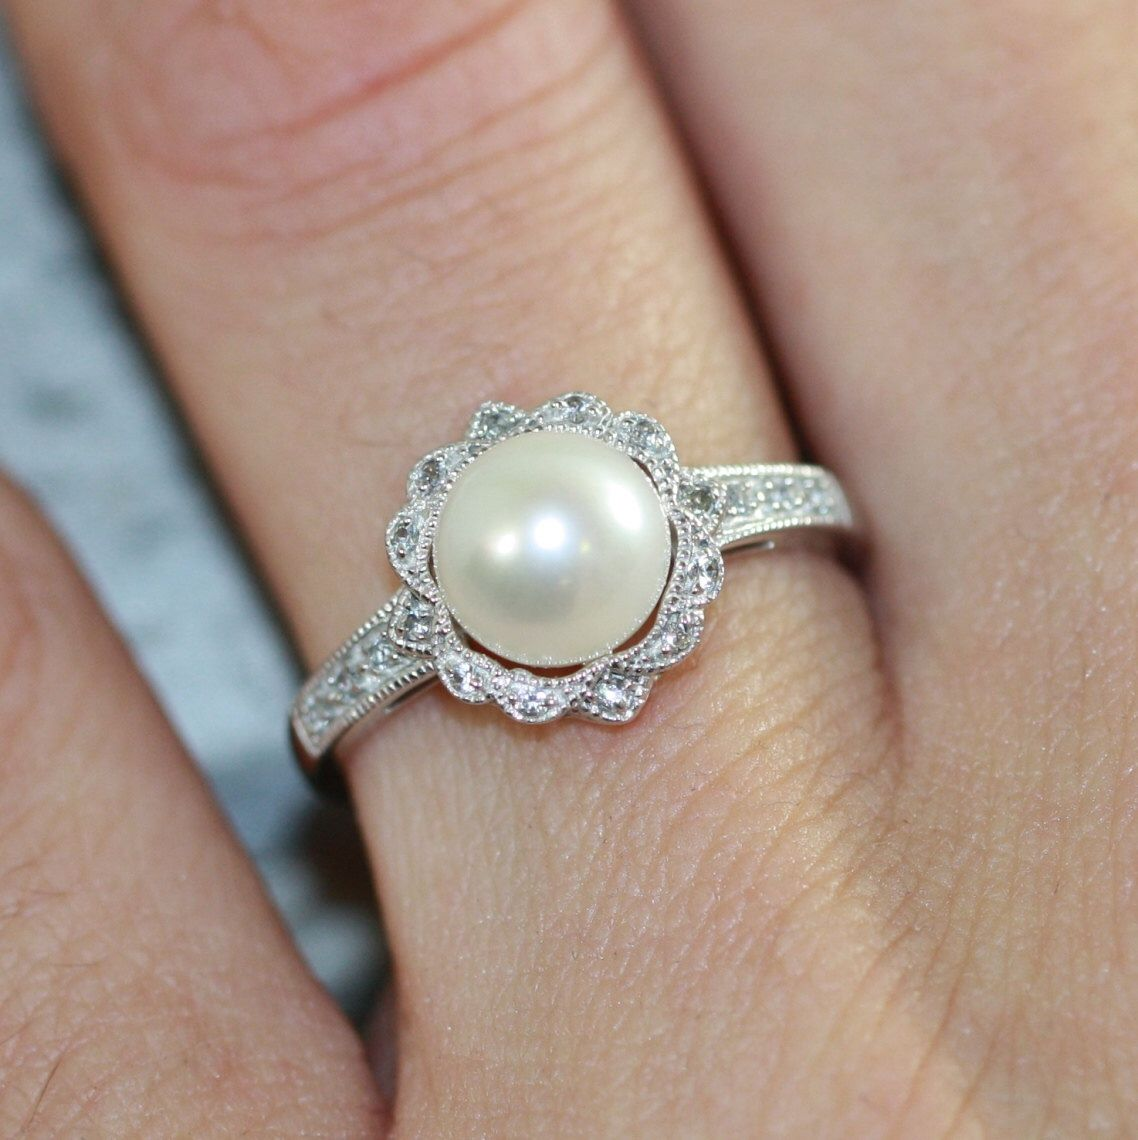 Vintage Inspired Floral Pearl Ring In 10k White Gold Pearl Engagement Ring  June Birthstone Ring Gemstone Band, Size 7 (resizable)